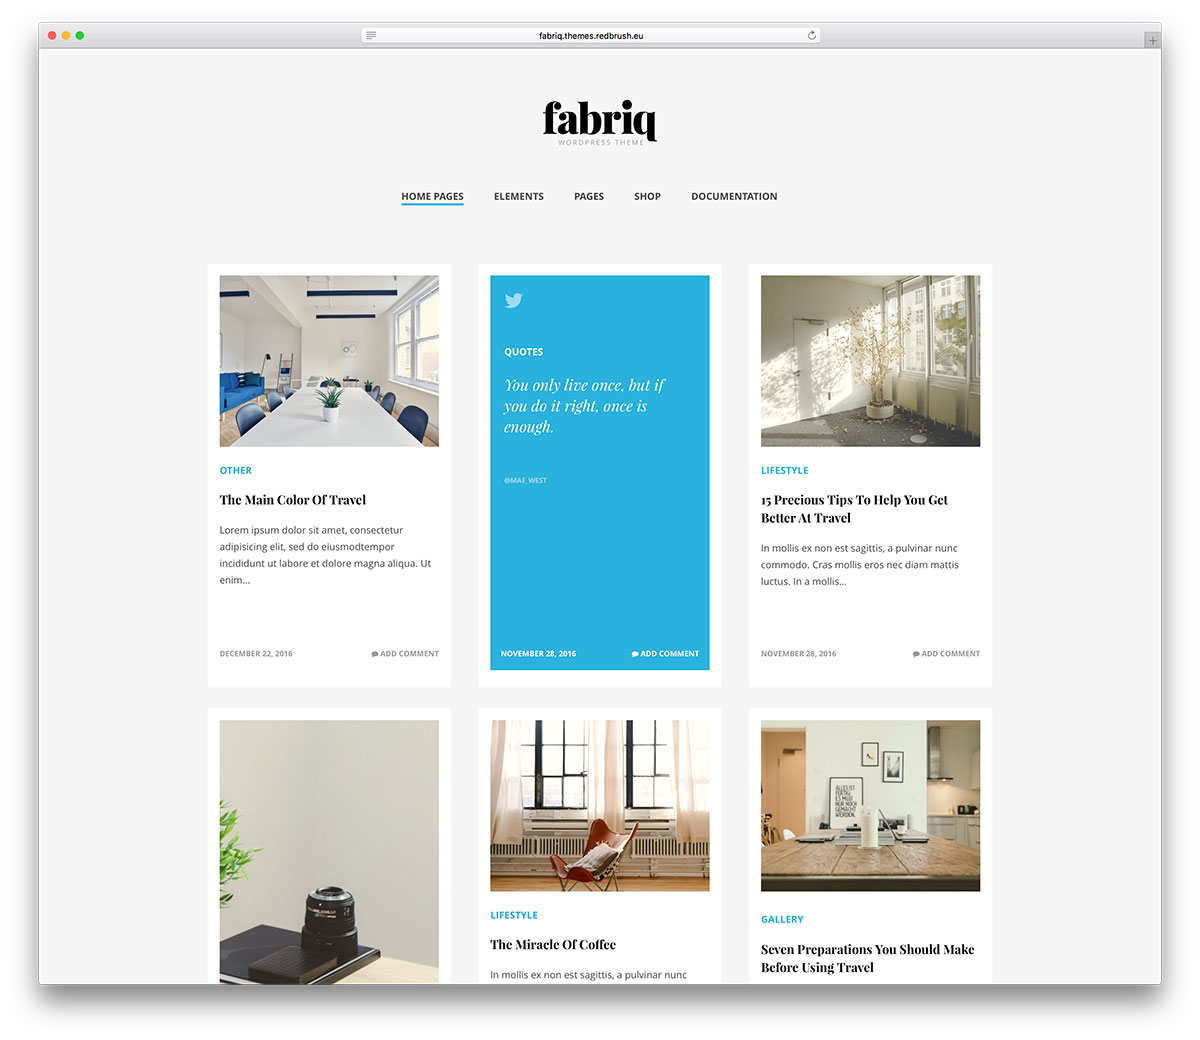 fabriq is a blog dedicated wordpress theme it has a creative orientation to express oneself in any wished way fabriq can also work for blogs meant for - Blogs On Design